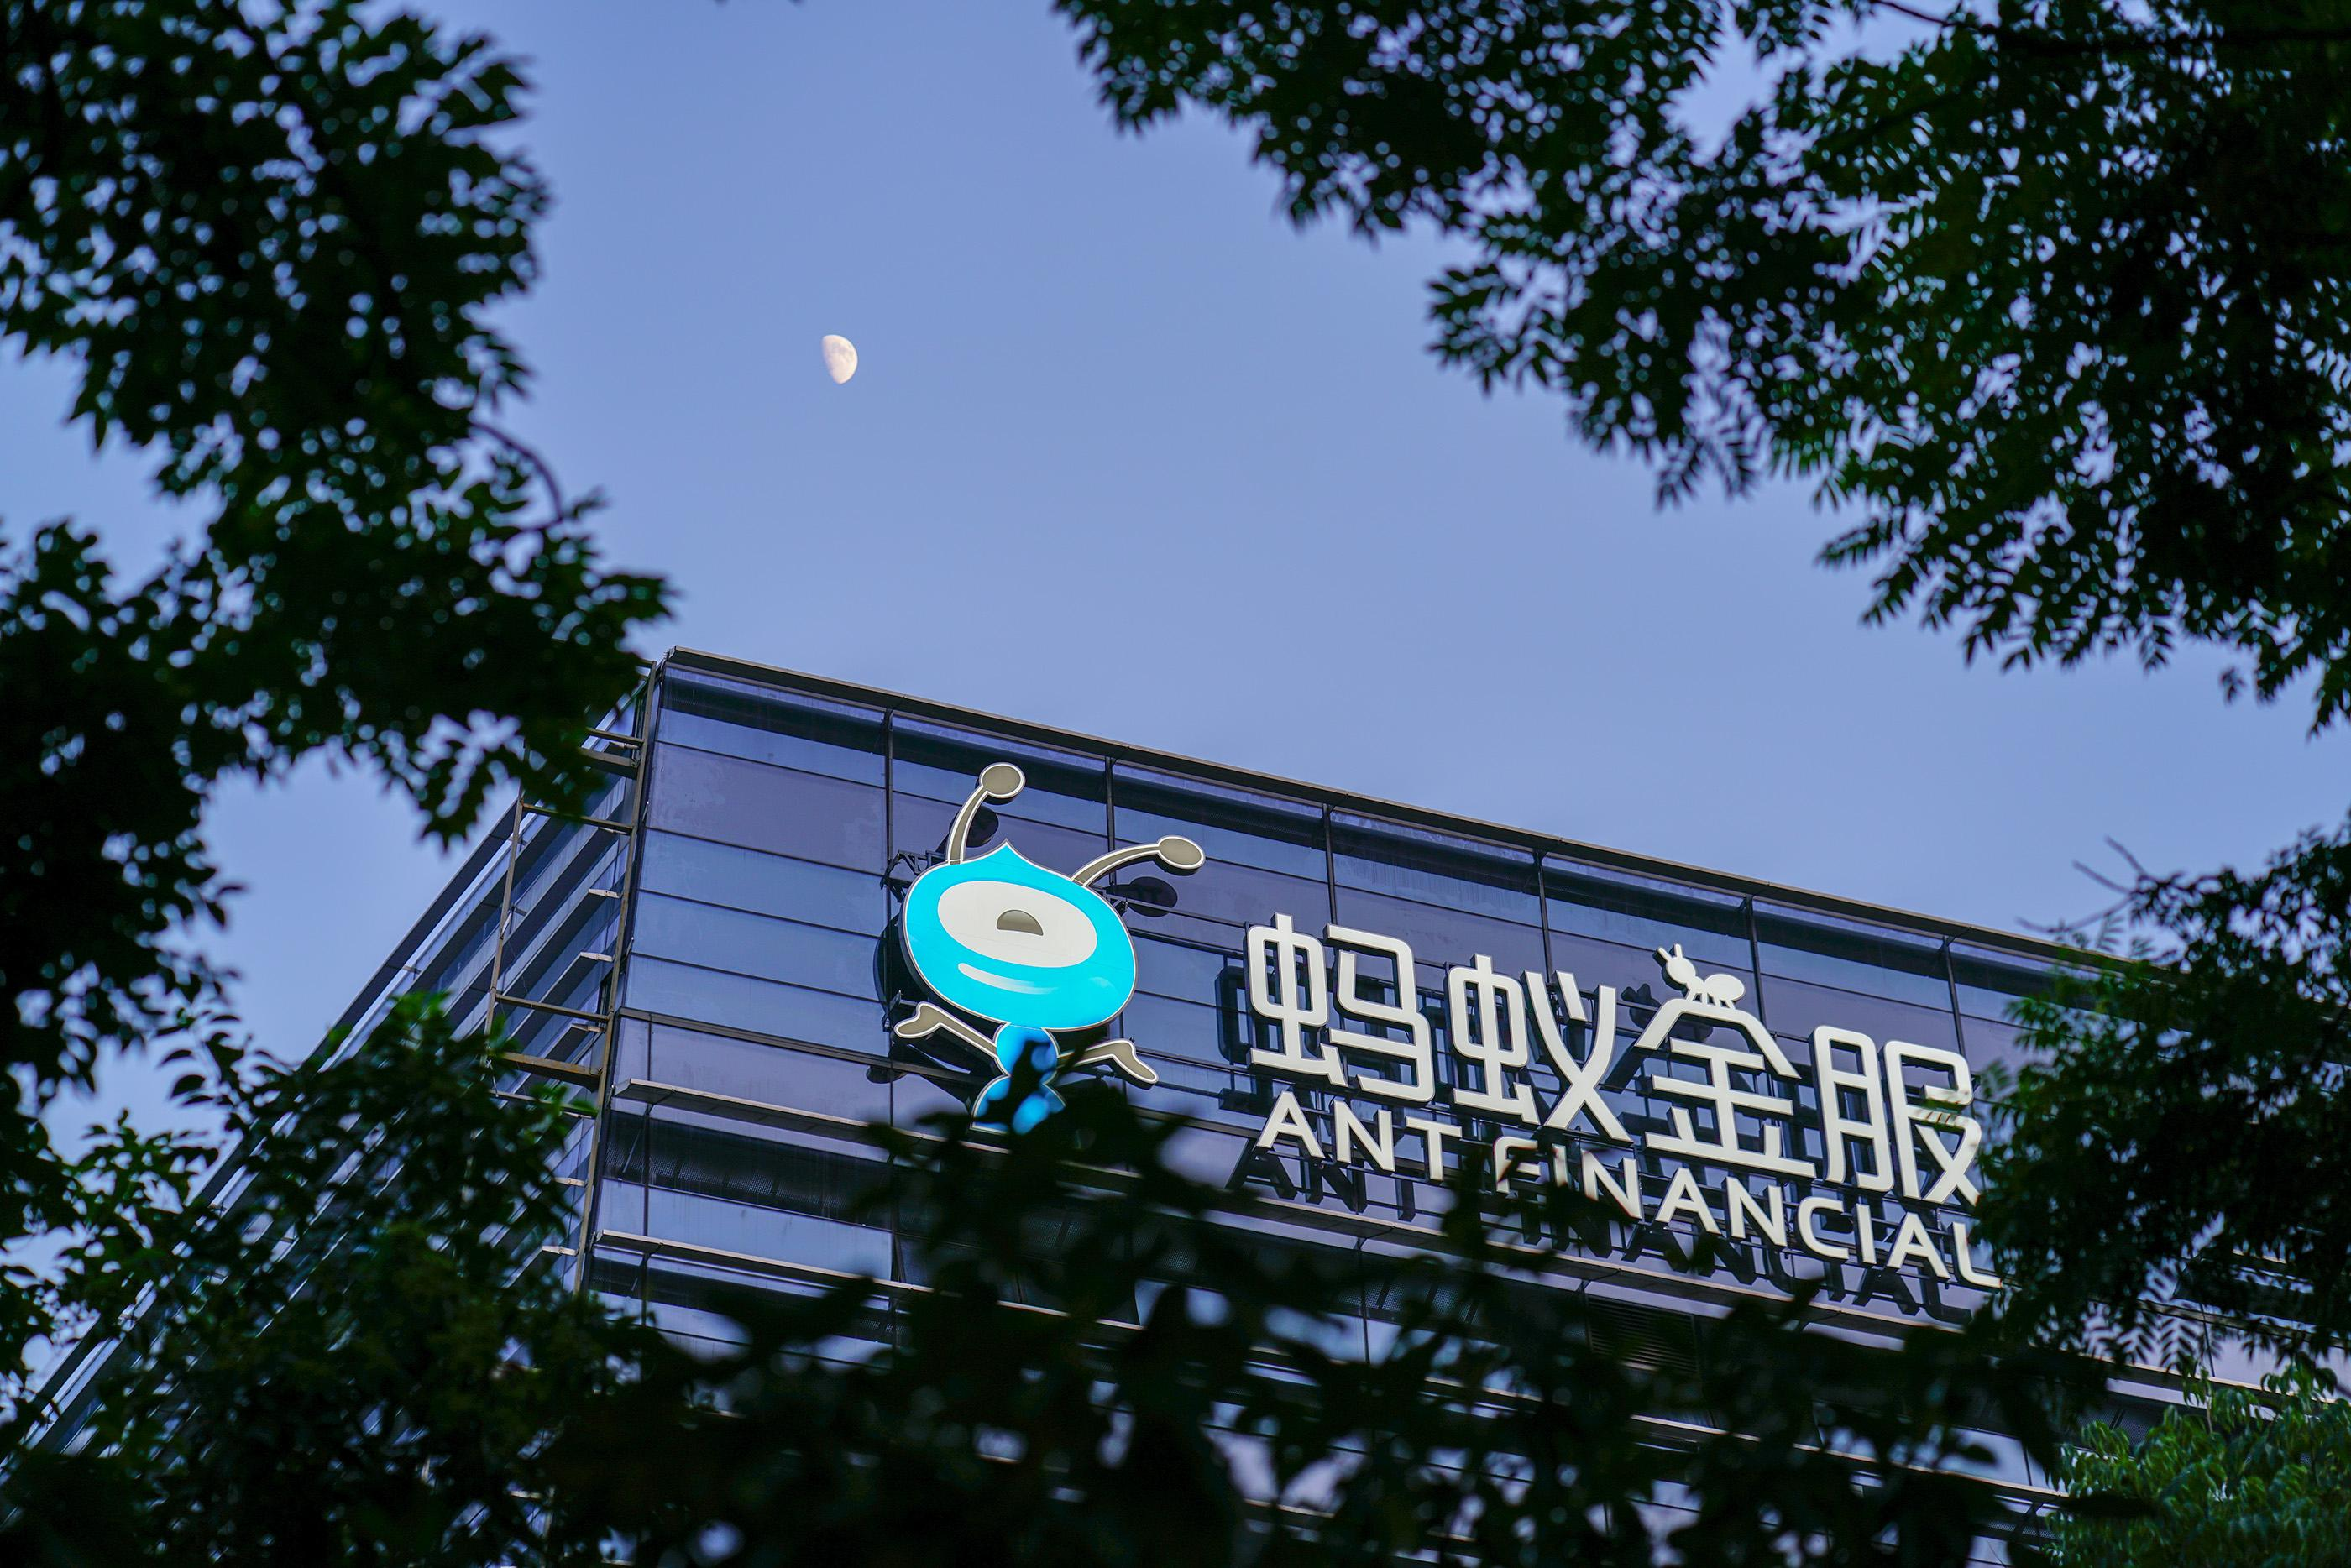 ant financial 2